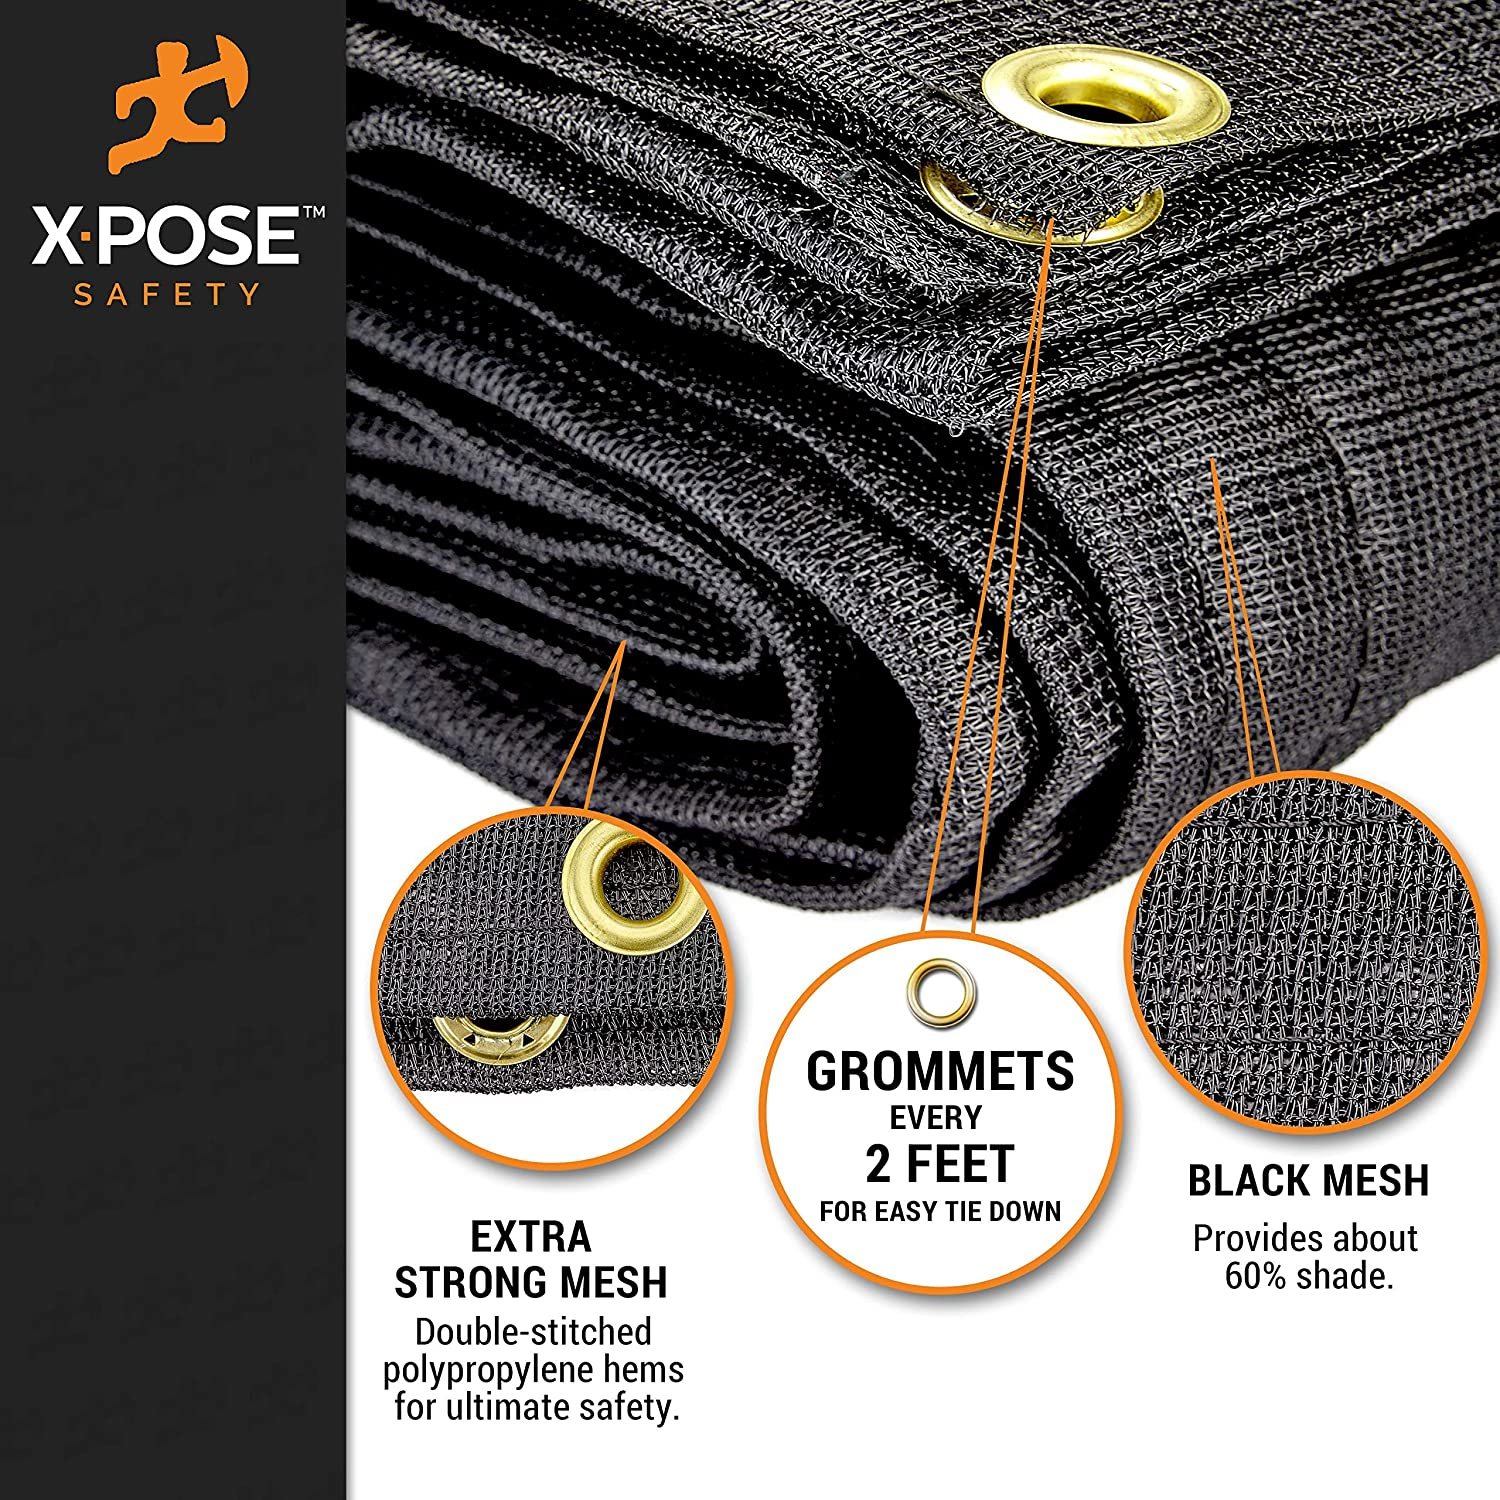 Xpose Safety Heavy Duty Mesh Tarp Tear Resistant Canopies Use for Tie Downs Fences 12/' x 14/' Multipurpose Black Protective Cover with Air Flow Shade Dump Trucks